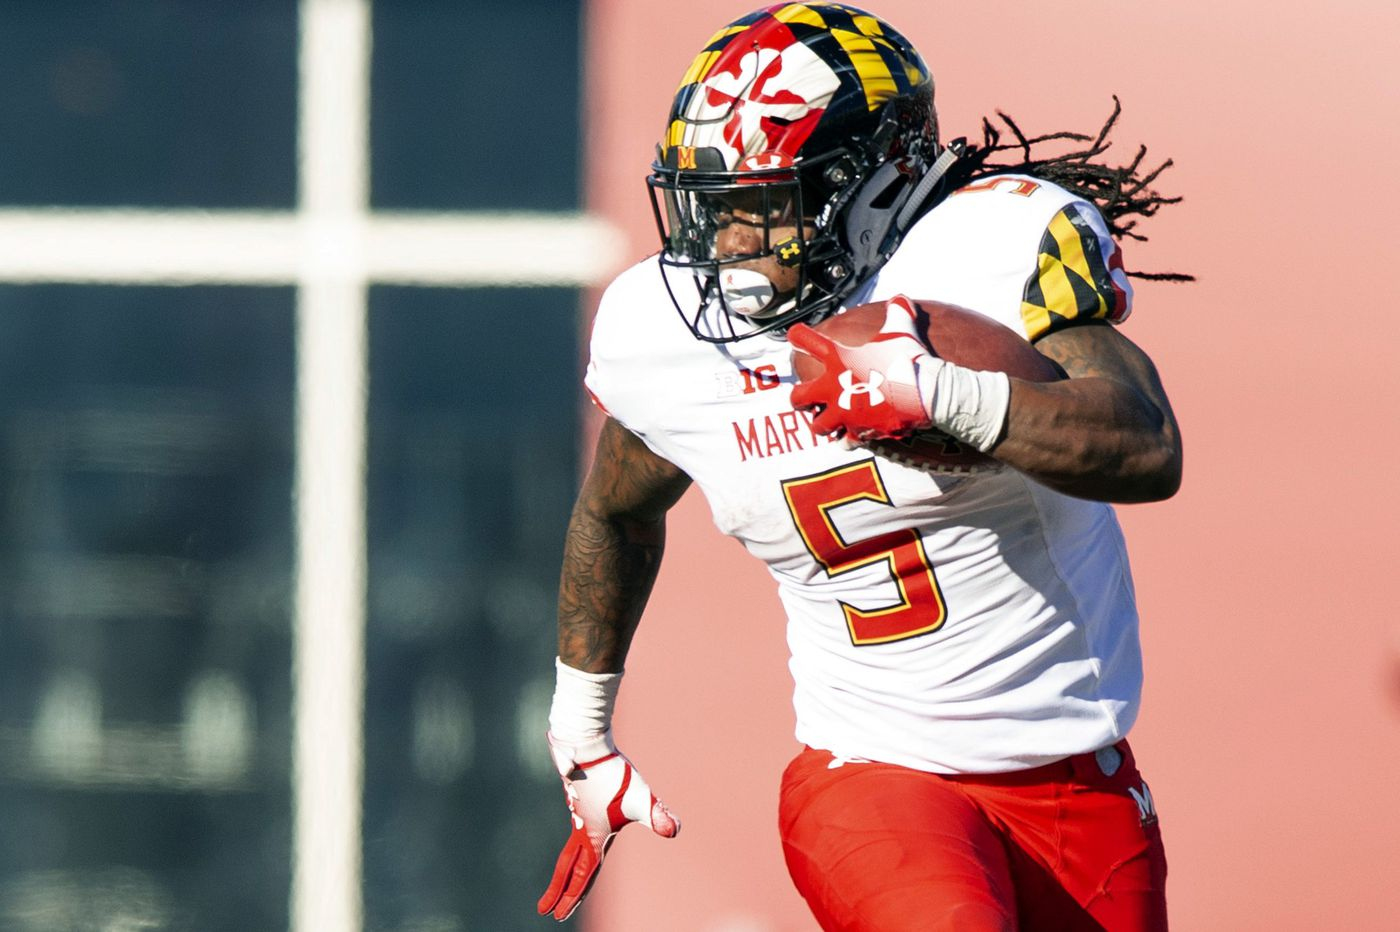 Penn State needs to stop Maryland running attack led by Anthony McFarland